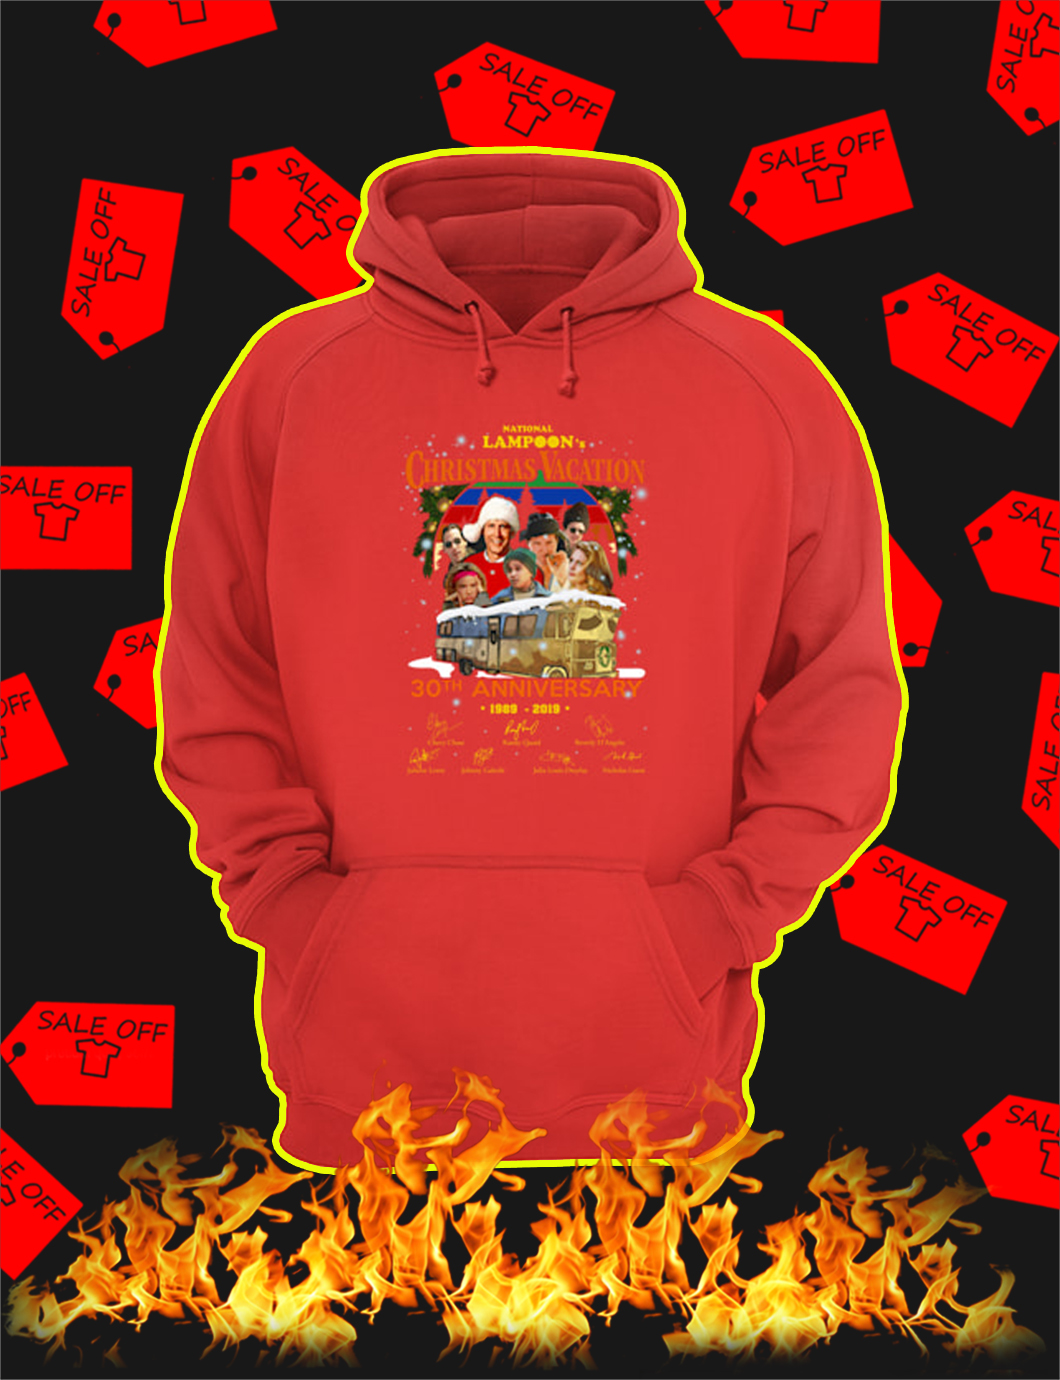 National Lampoon's Christmas Vacation 30th Anniversary 1989 2019 hoodie